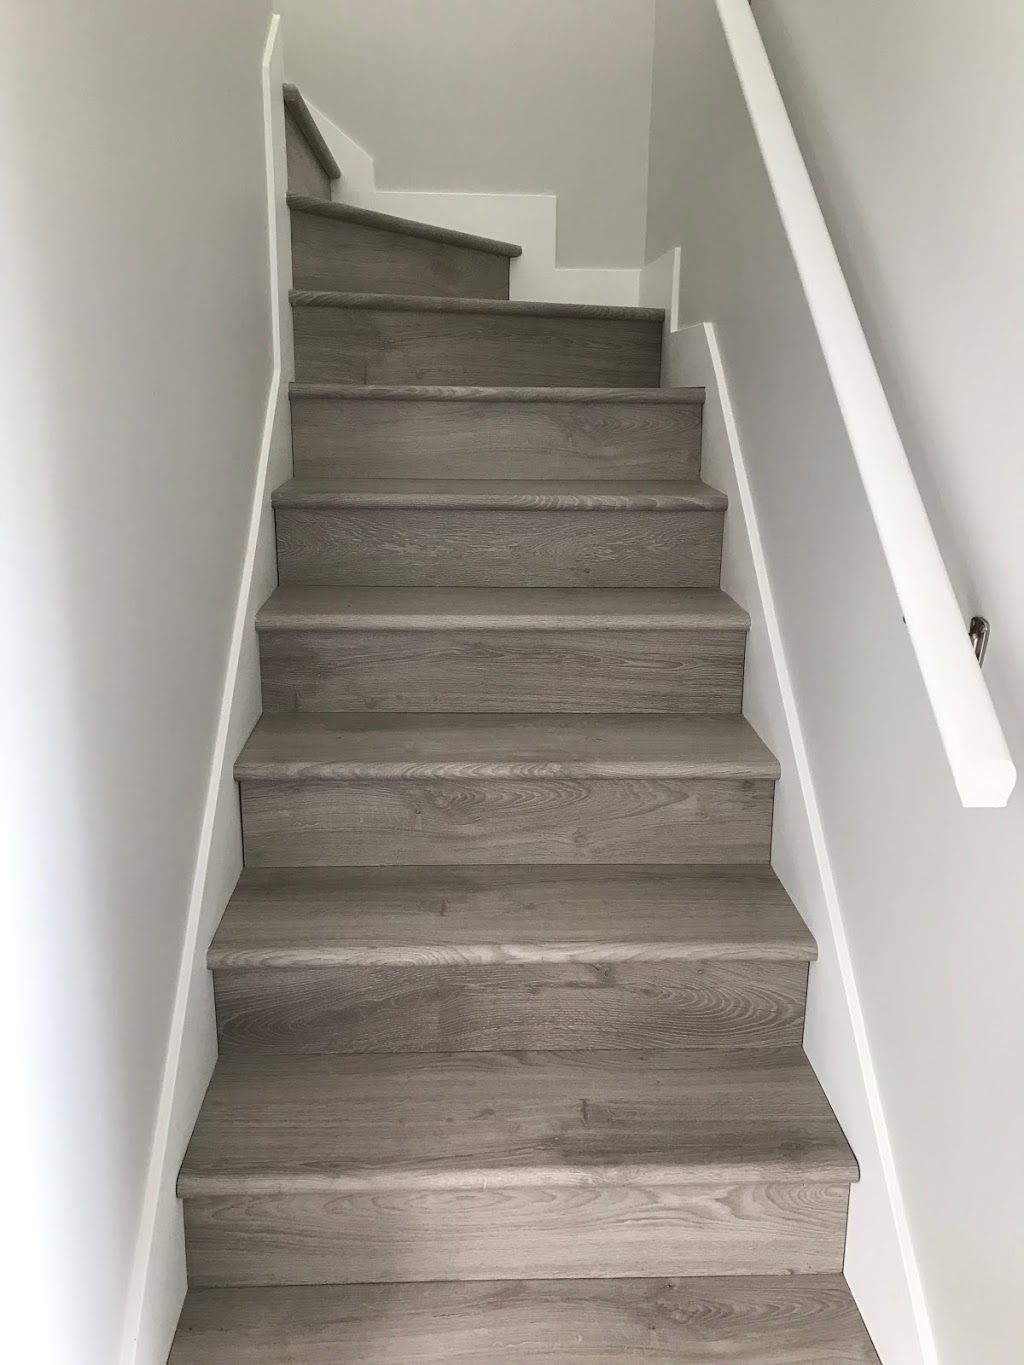 BCWoodguy Renovation and Handyman Services | home goods store | 12243 Senda Ct, Mission, BC V4S 1B8, Canada | 7782297750 OR +1 778-229-7750